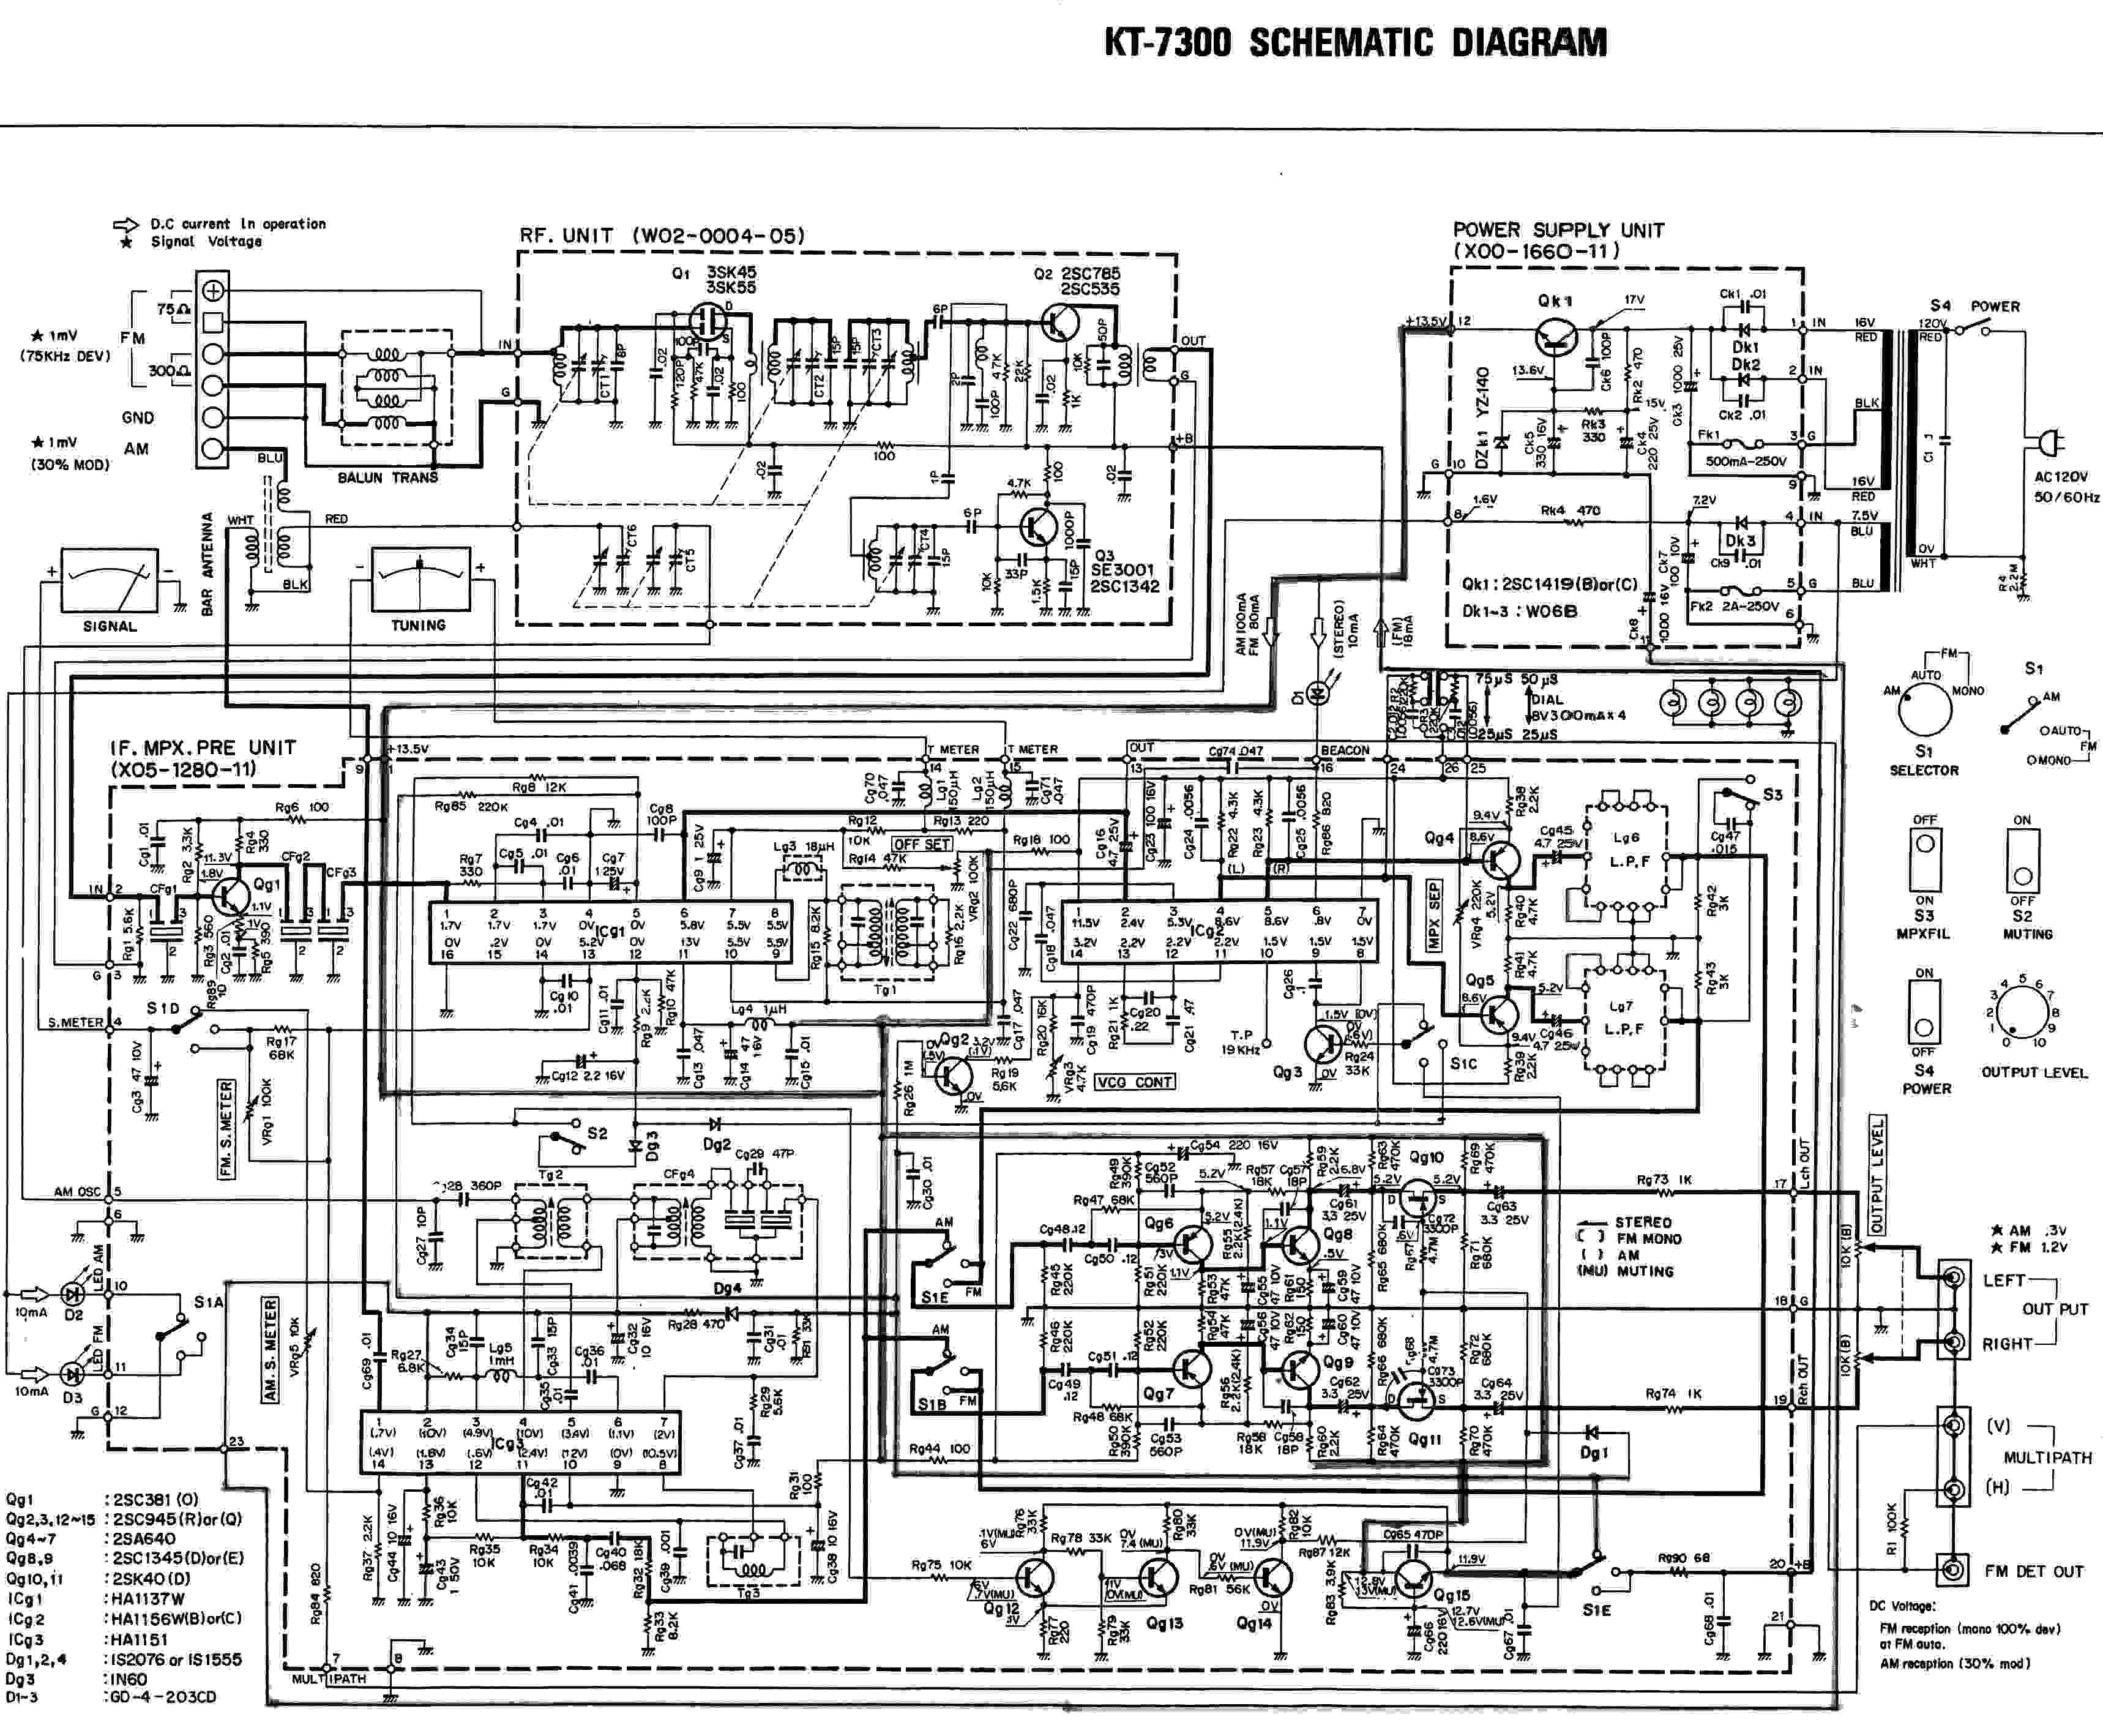 thermostat ct3500a4453 wiring diagram mercury tachometer wiring Honeywell Thermostat Chronotherm III Wiring  Honeywell Boiler Diagrams Honeywell 7-Day Programmable Thermostat Manual Honeywell Zone Valve Wiring 1311